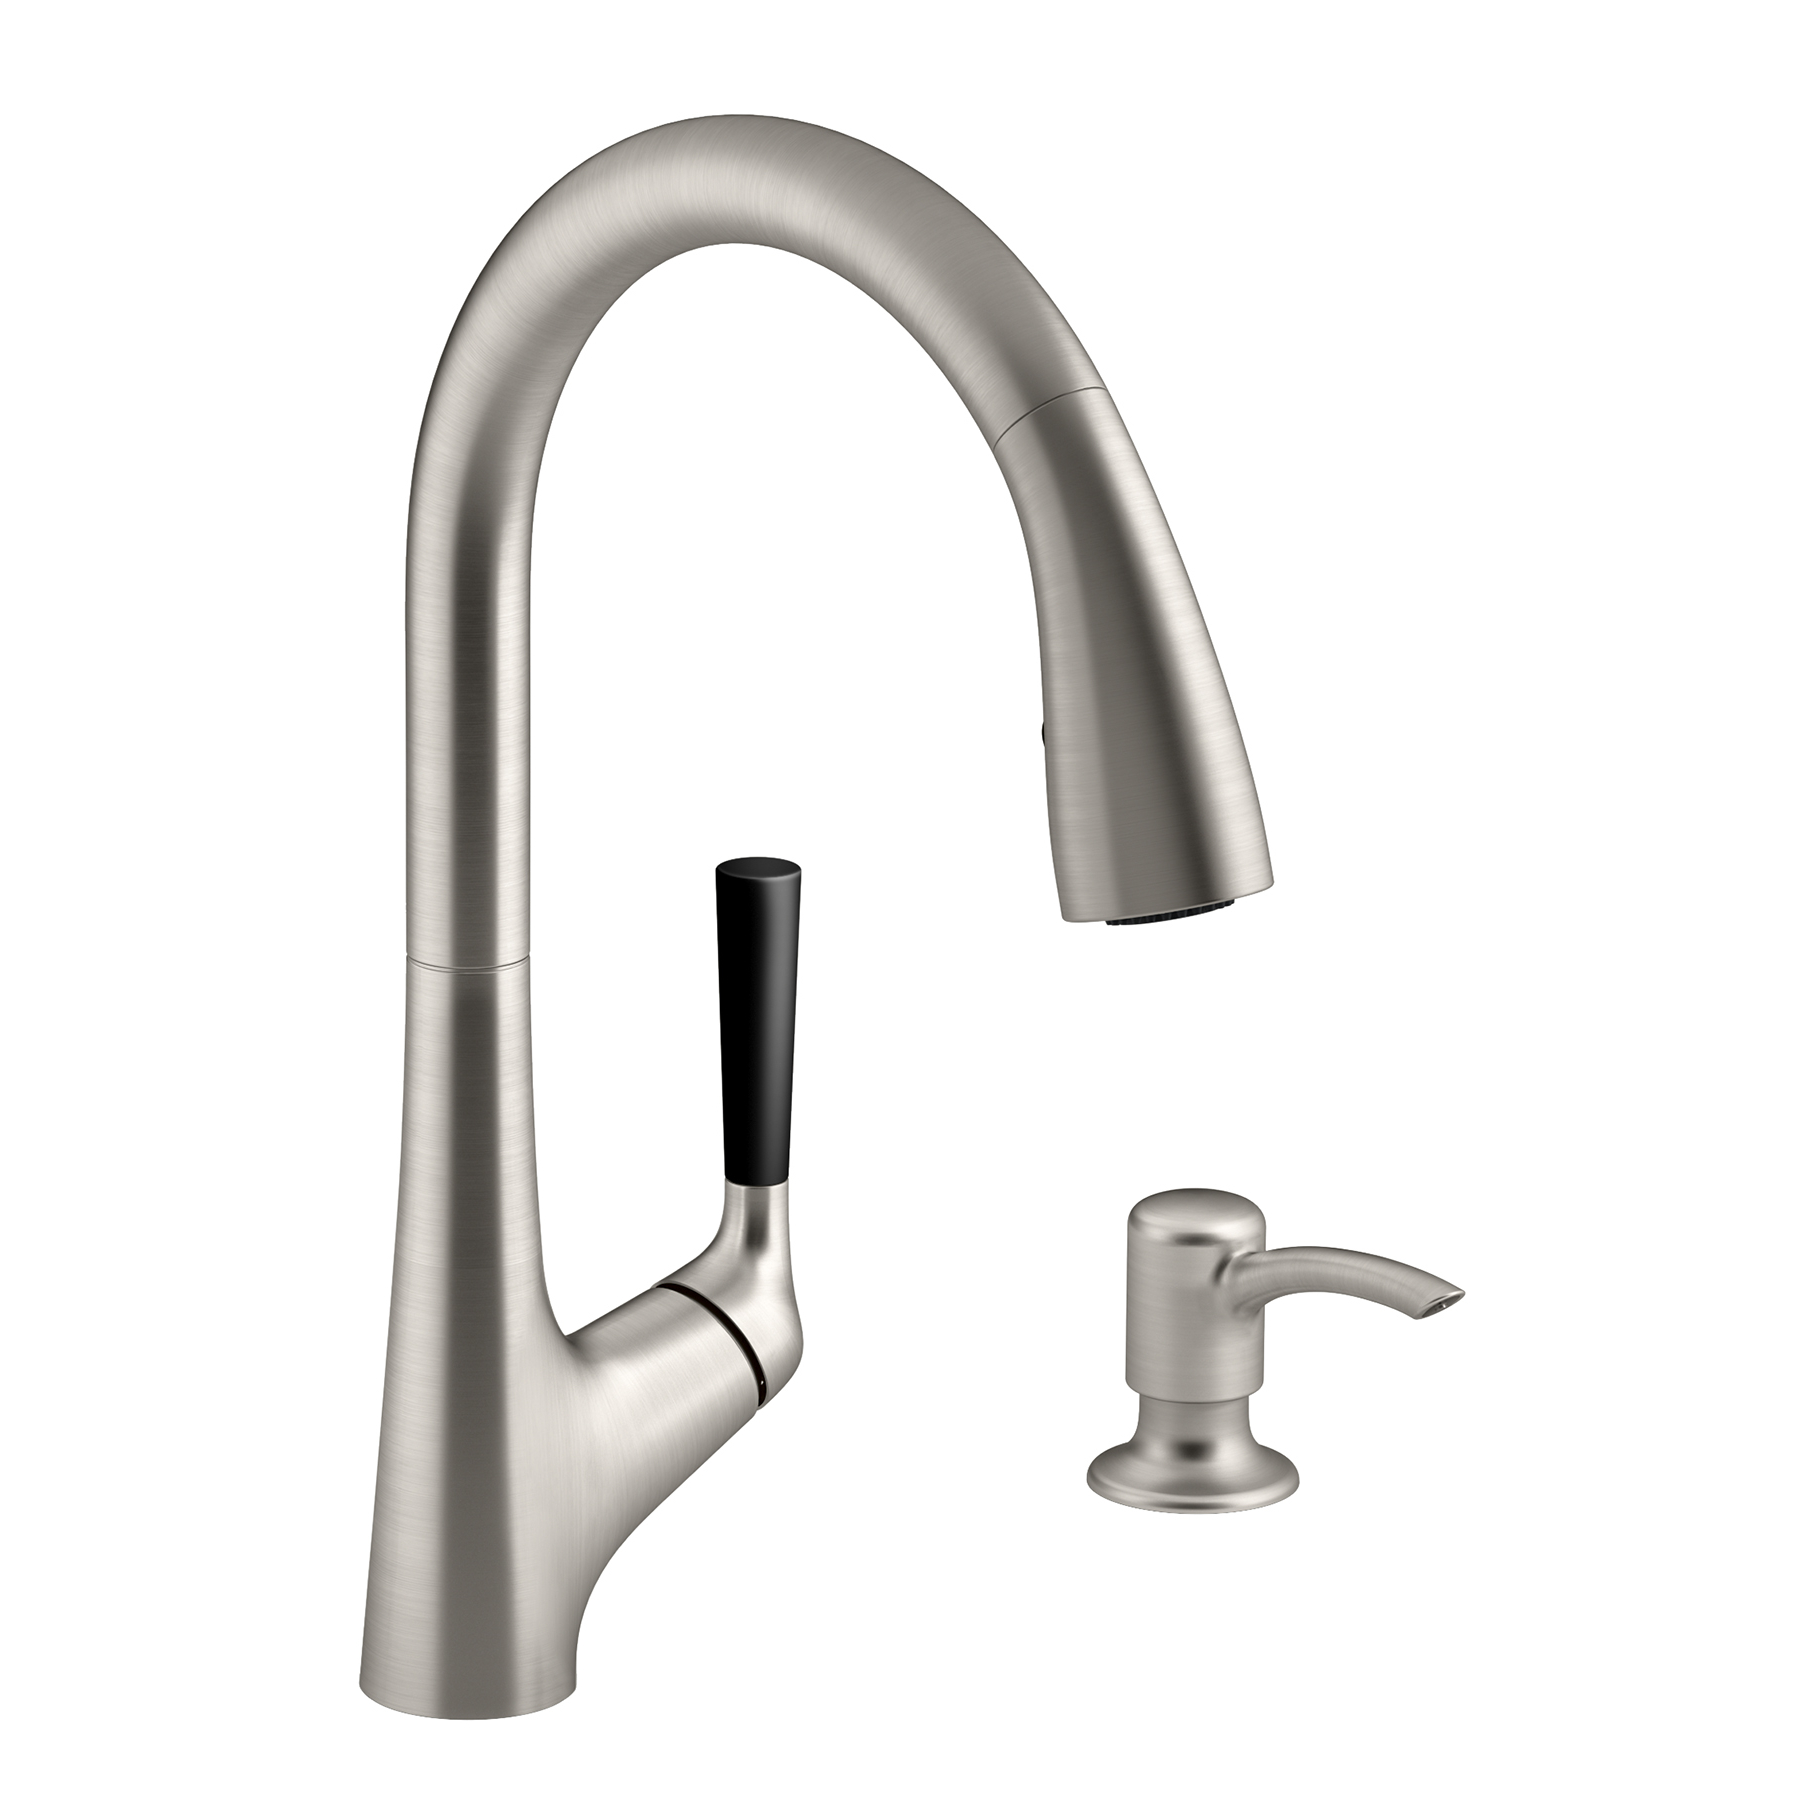 Kohler R562 SD VS Vibrant Stainless Steel Malleco™ Pull Down Kitchen Faucet  Kit   Walmart.com